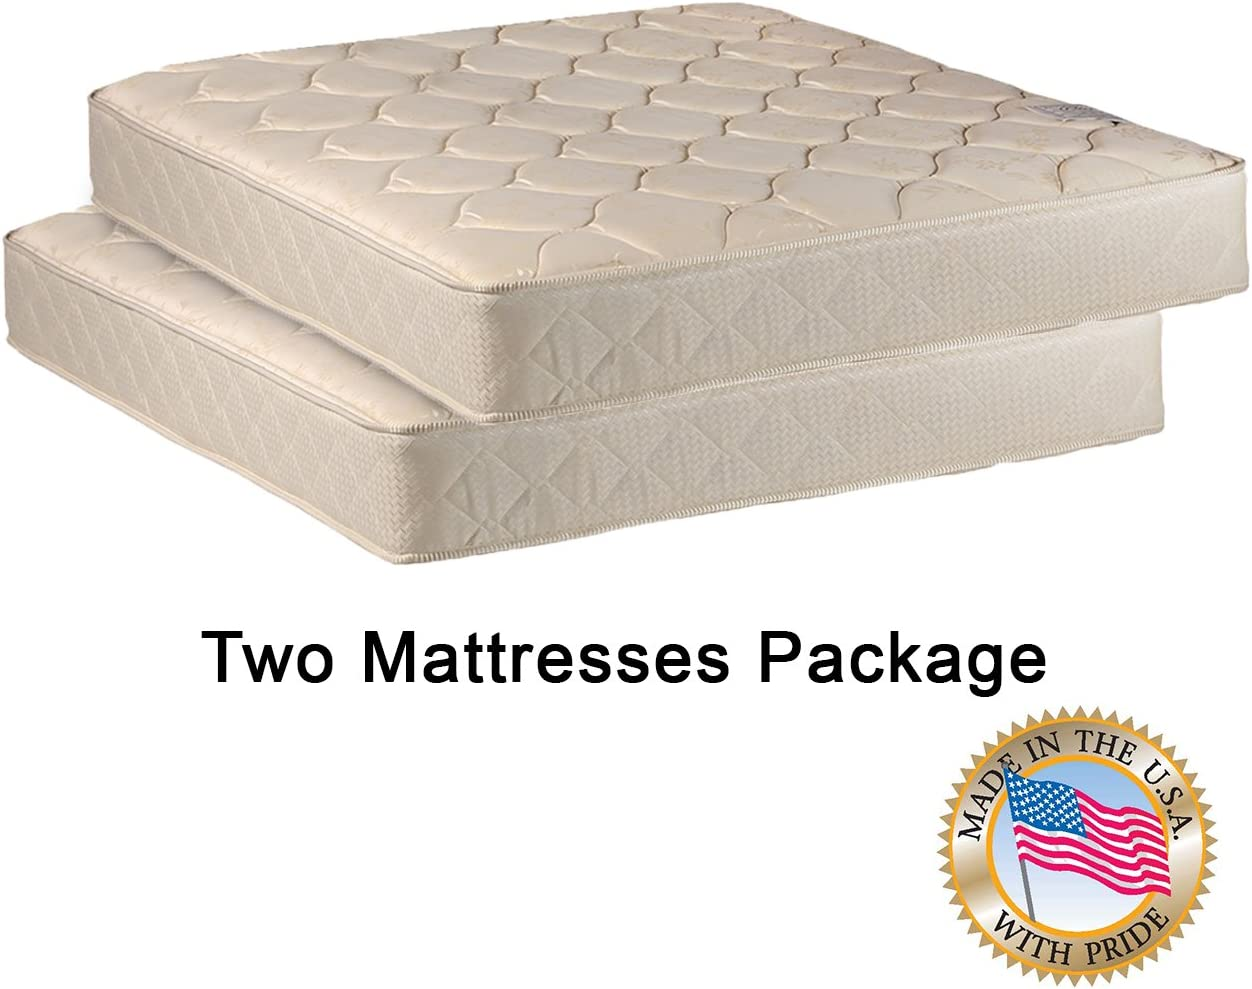 Comfort Bedding Two 33 Mattresses Package for Bunk Bed or Trundle Bed